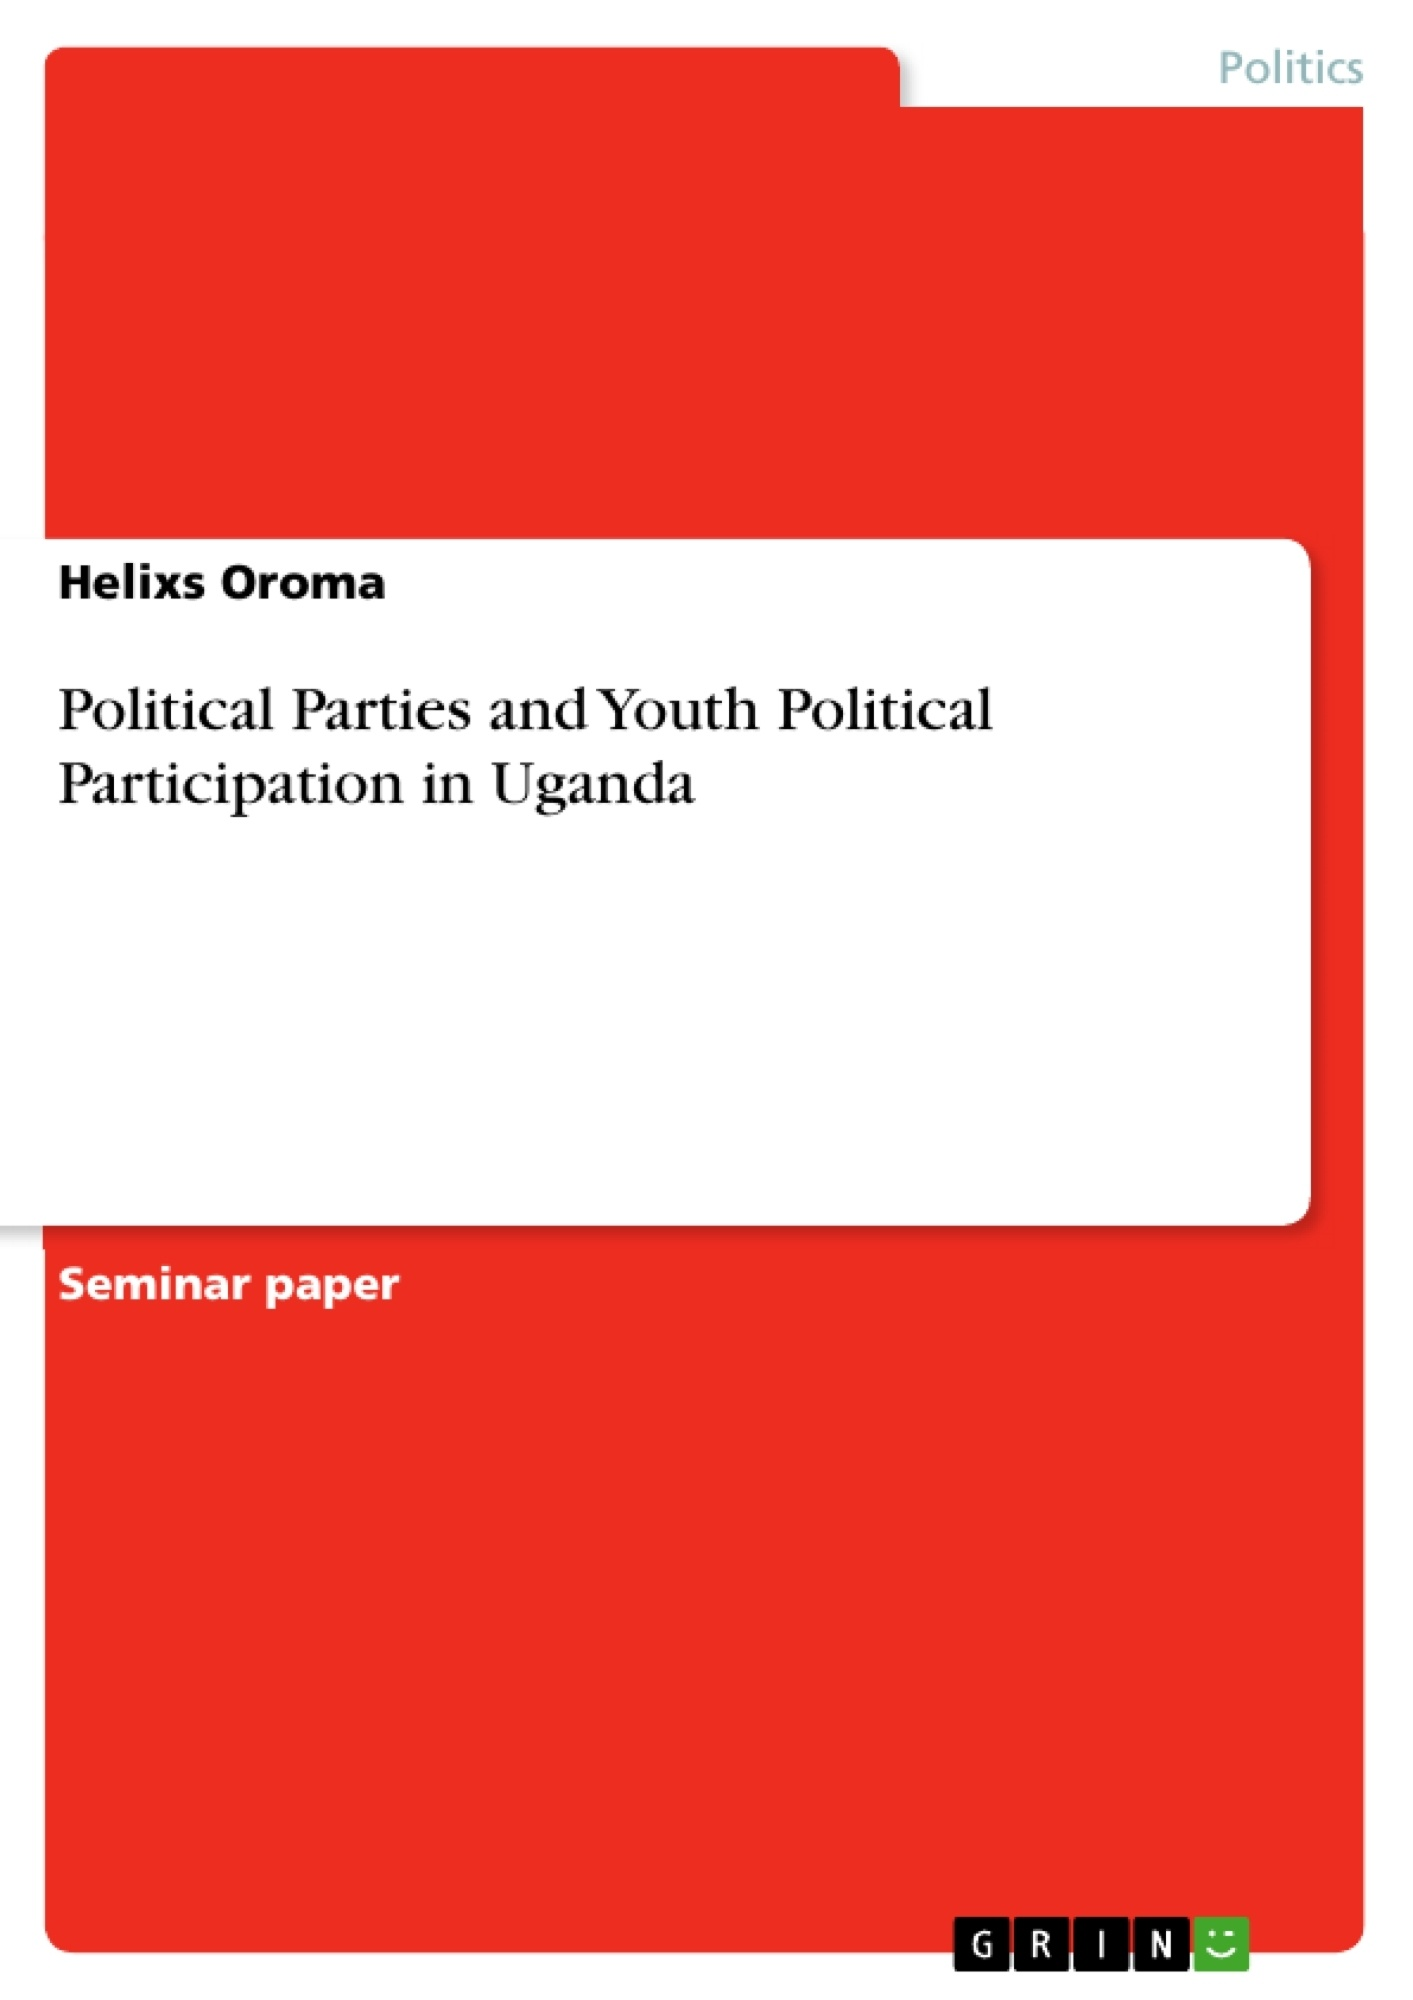 Title: Political Parties and Youth Political Participation in Uganda